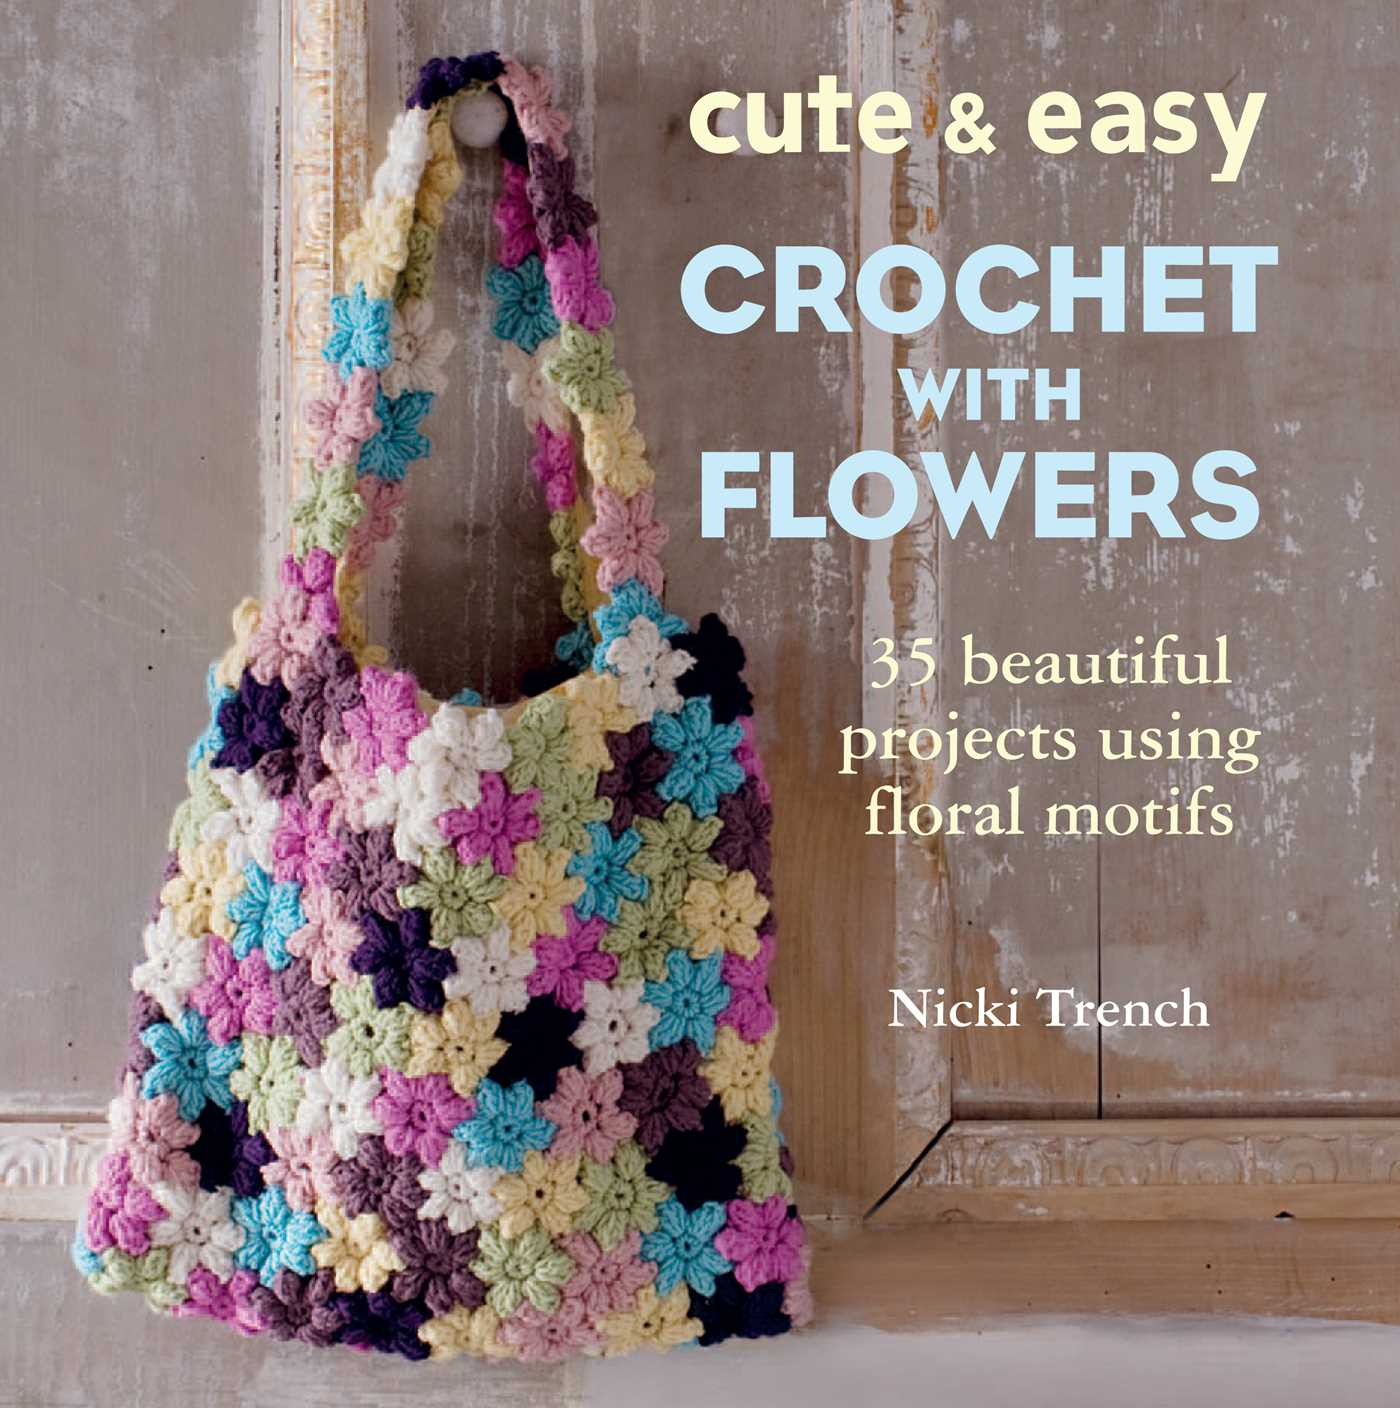 Easy Crochet Book Cover : Cute easy crochet with flowers book by nicki trench